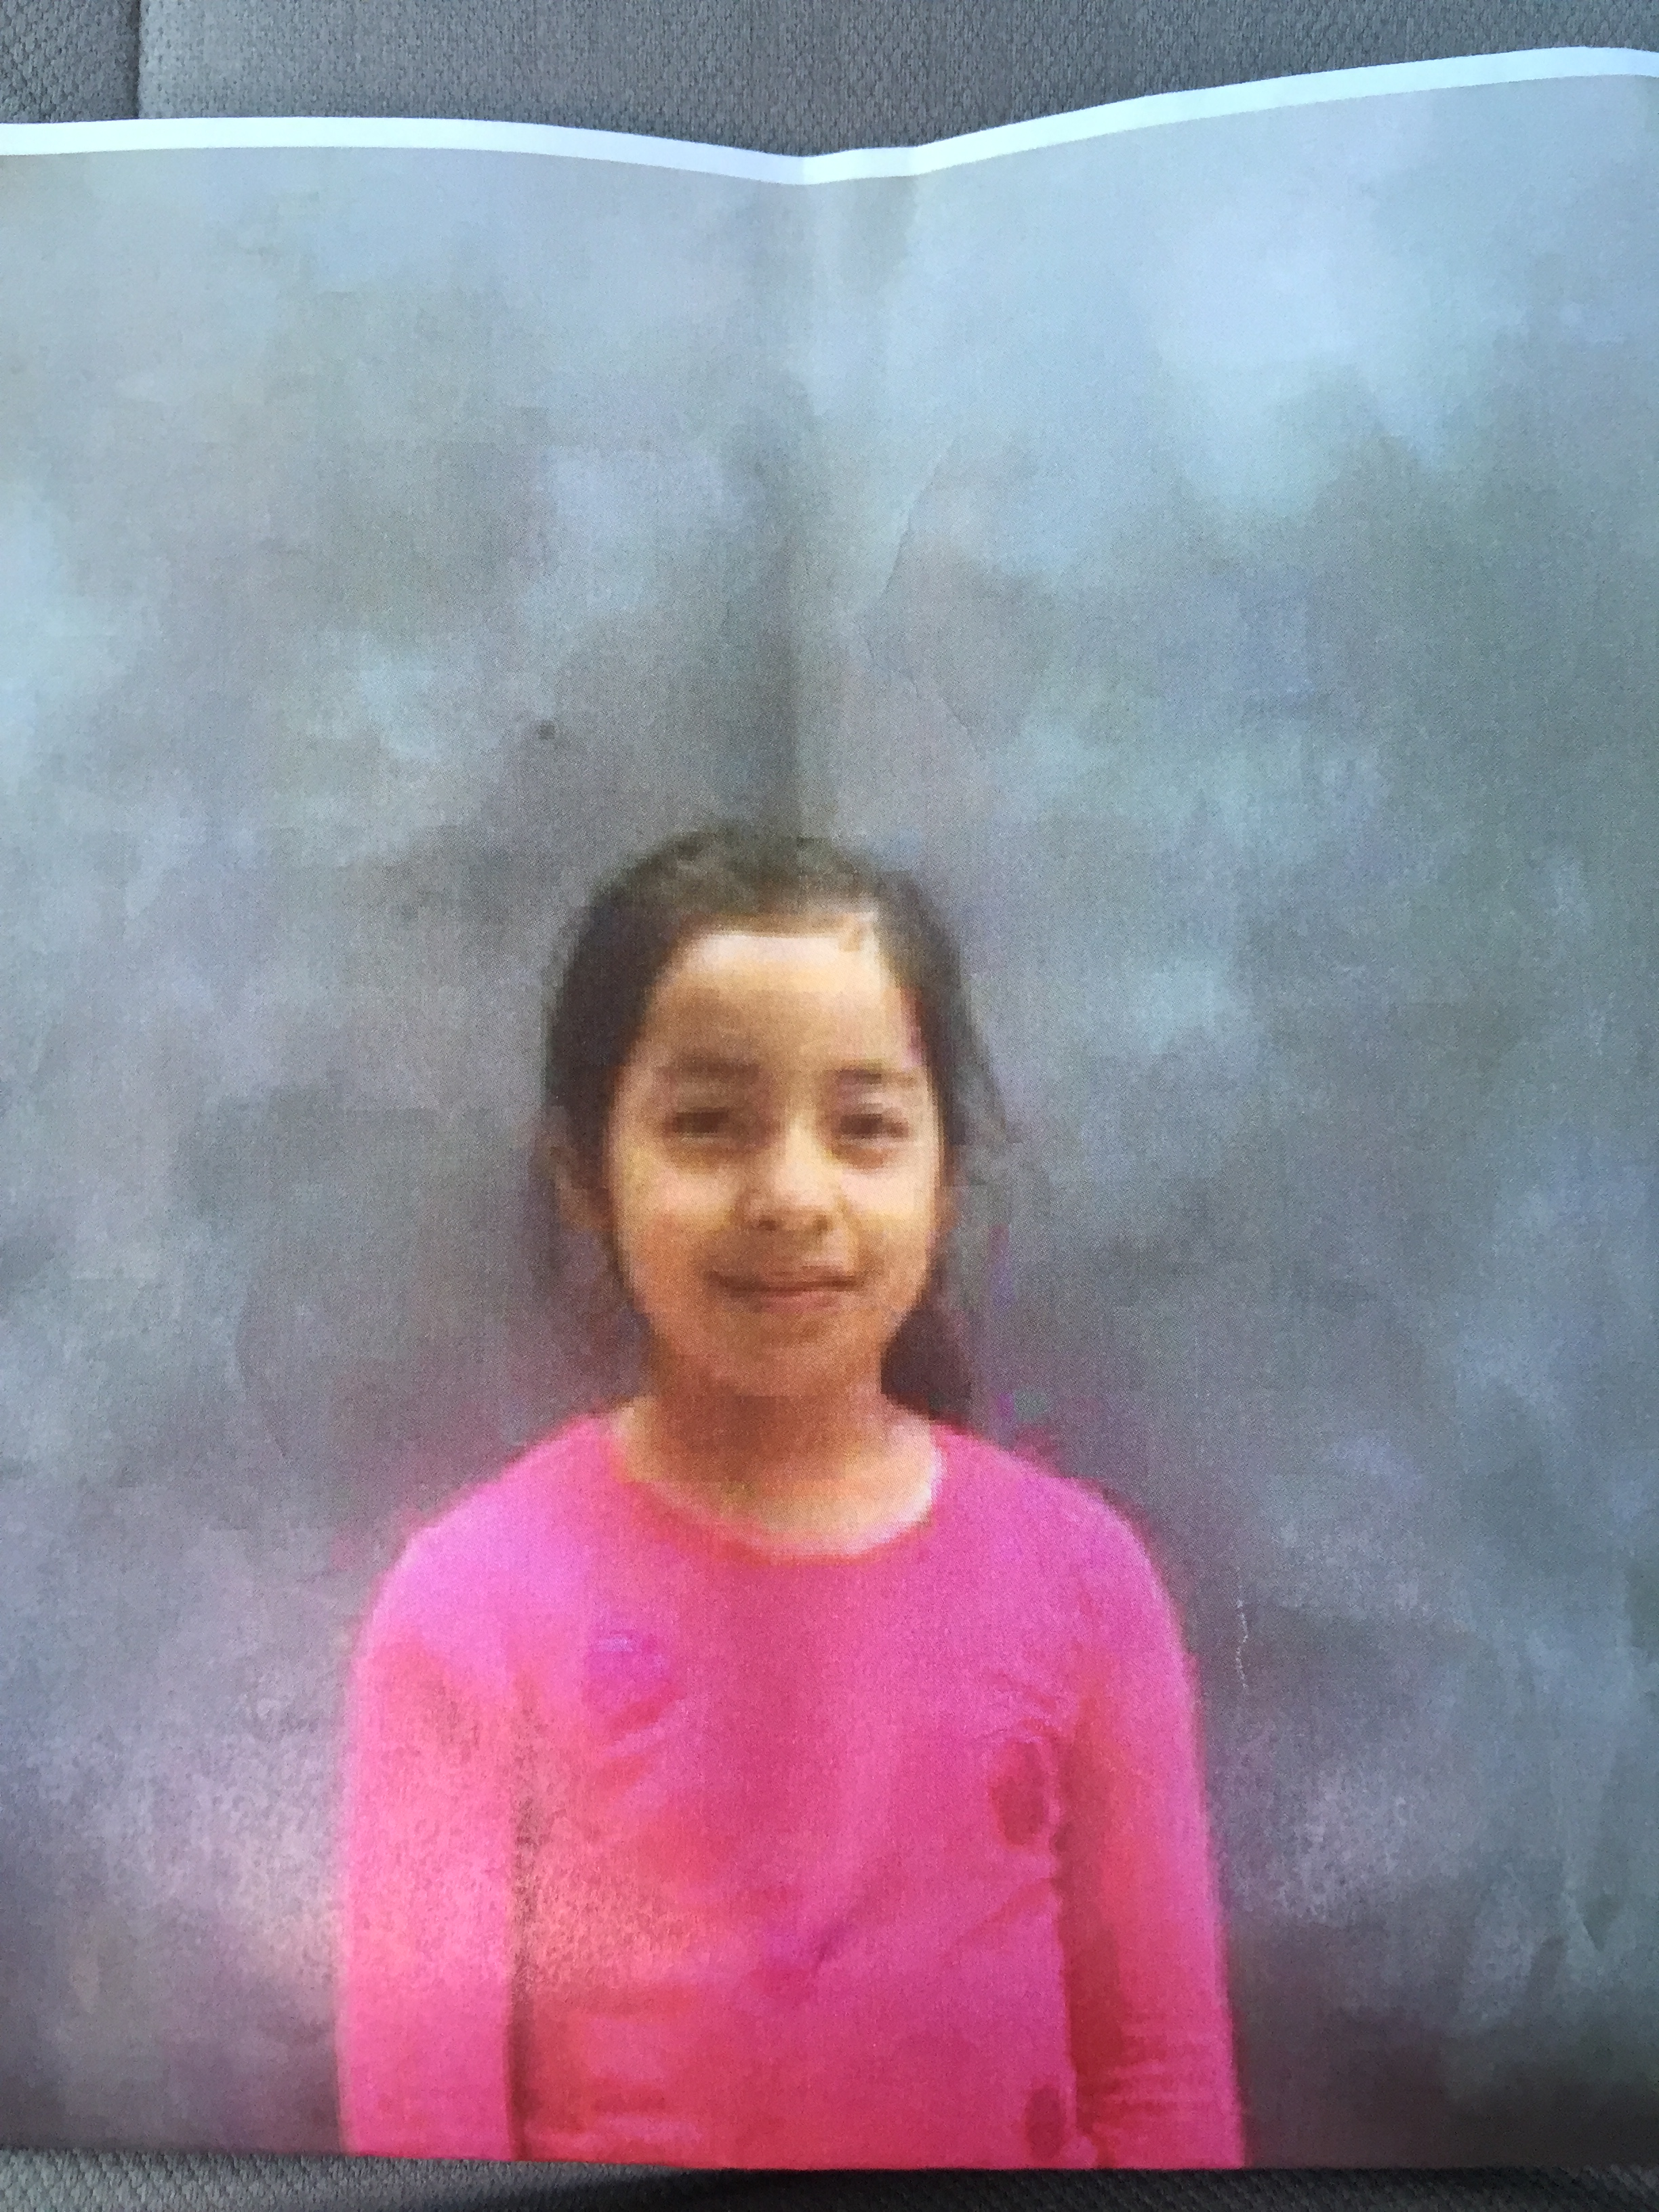 Amber Alert Issued For Child After Oklahoma Machete Attack